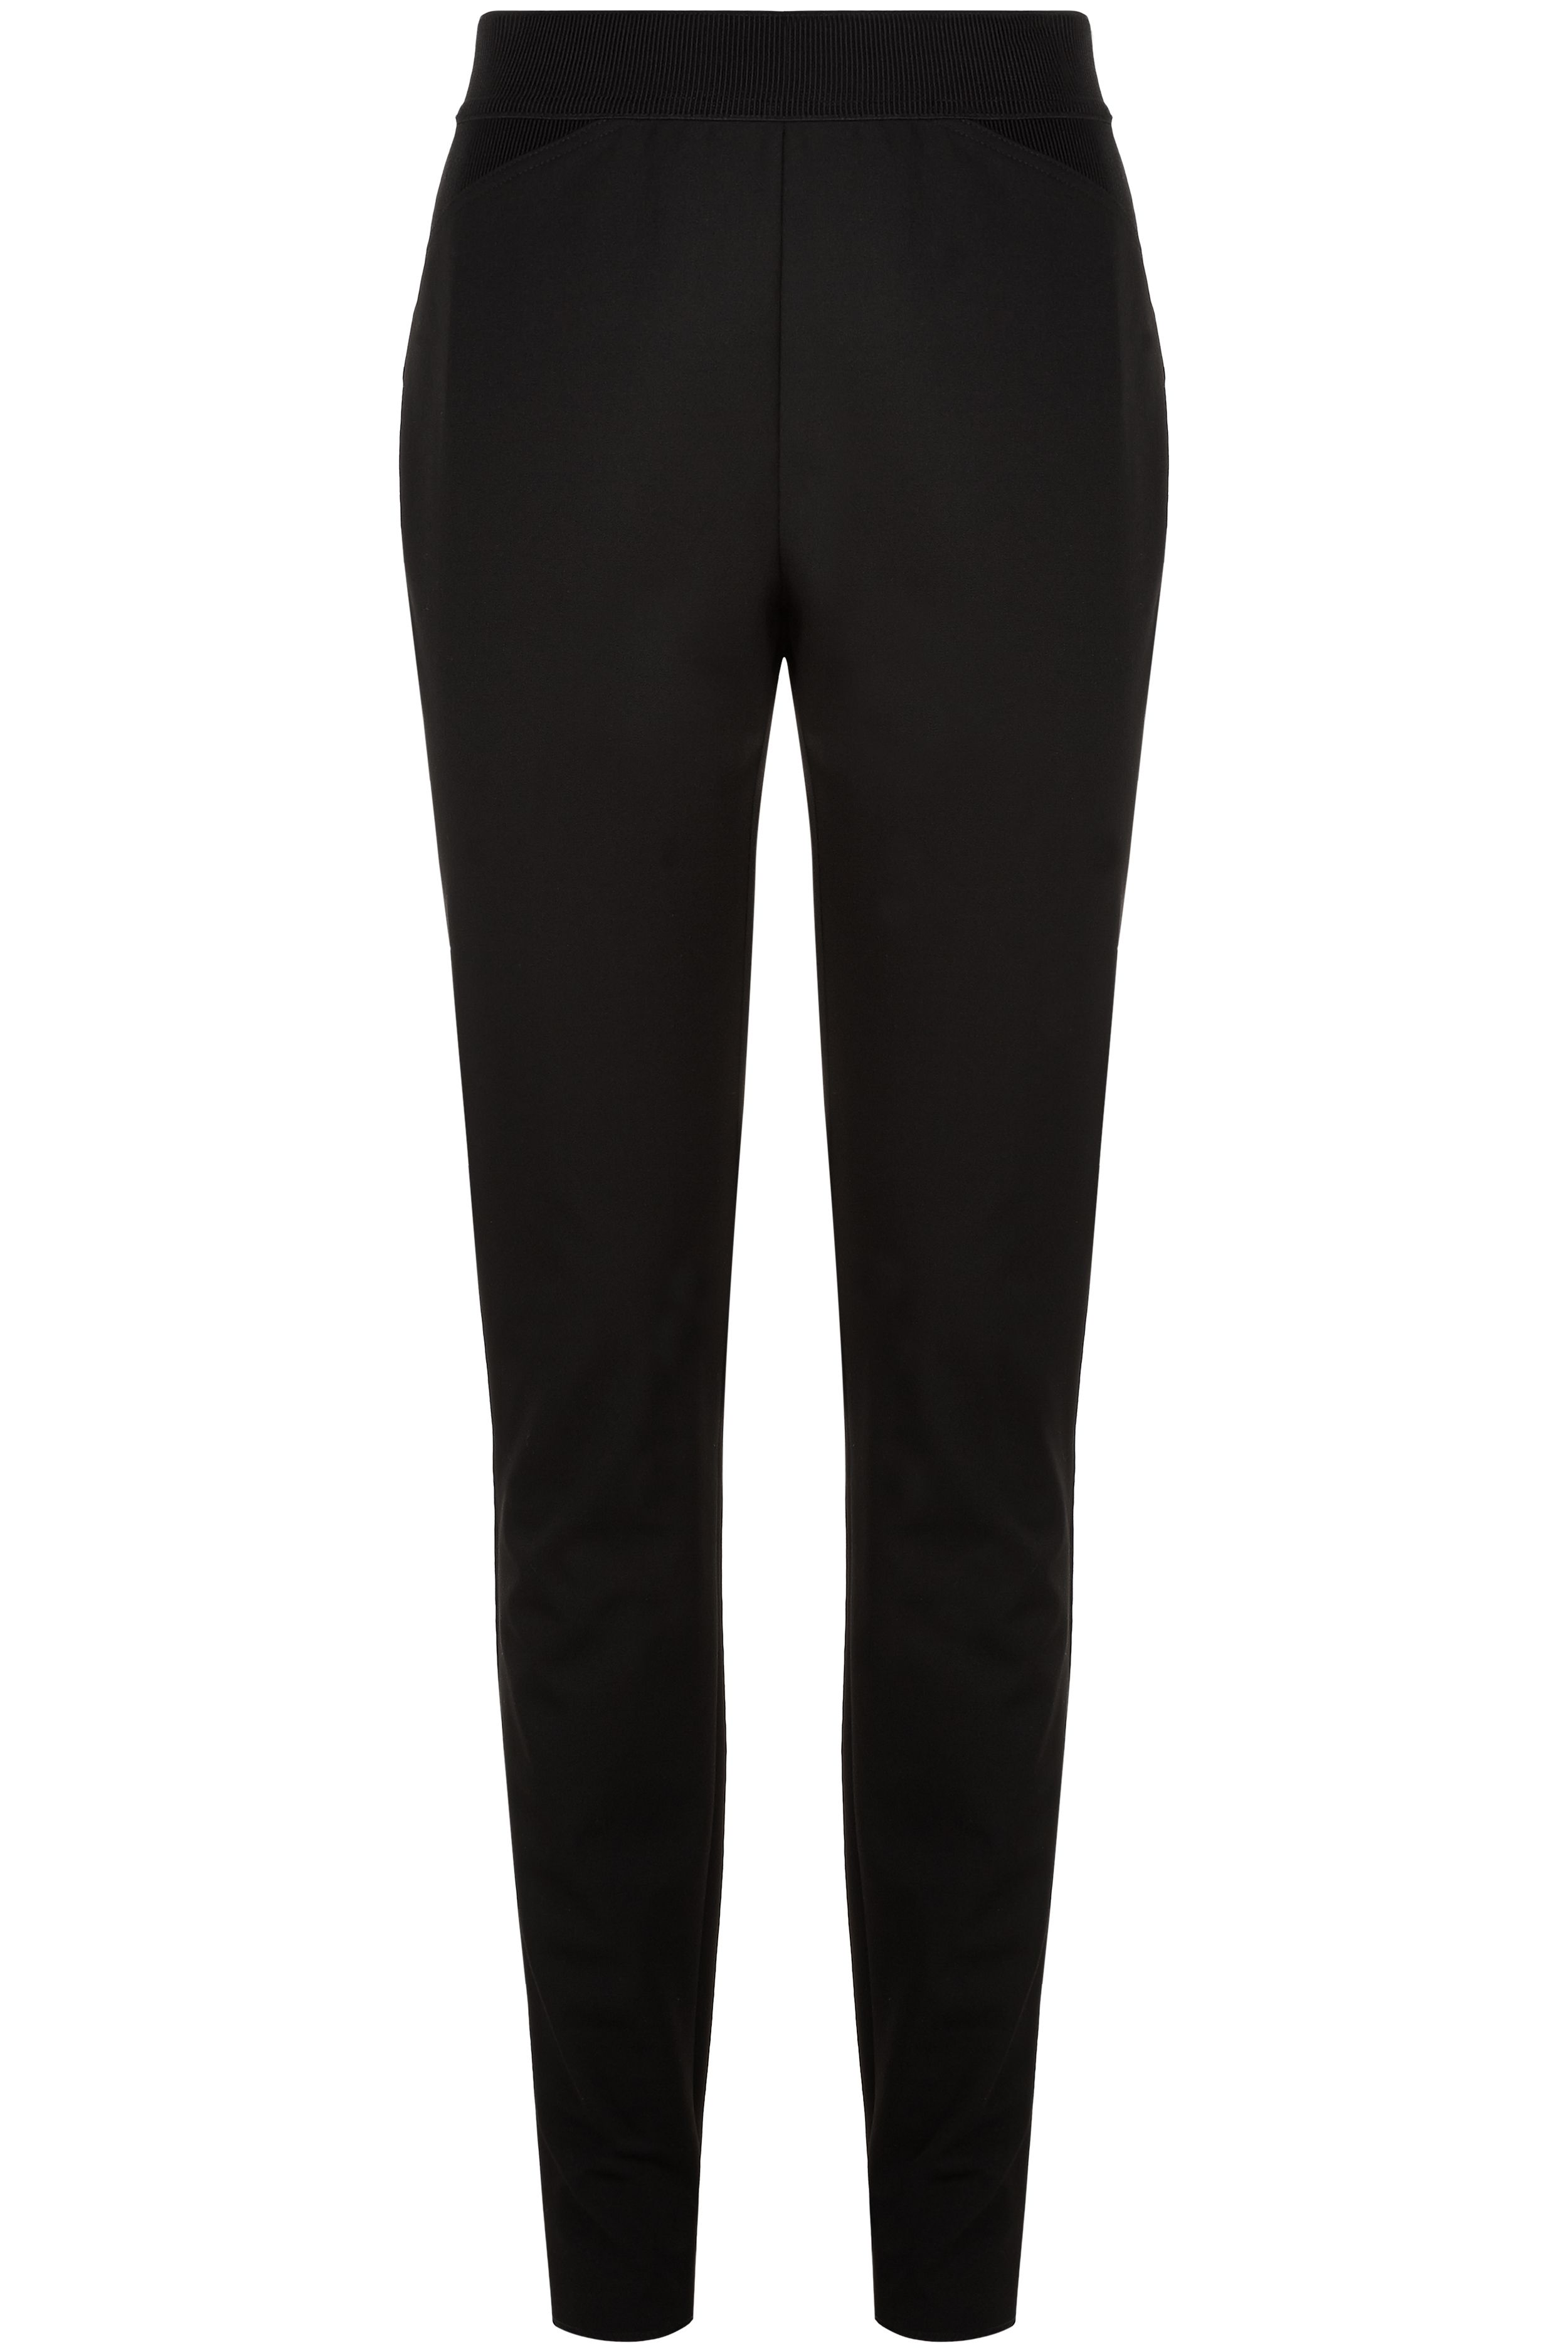 Damsel in a Dress Clio Trousers, Black